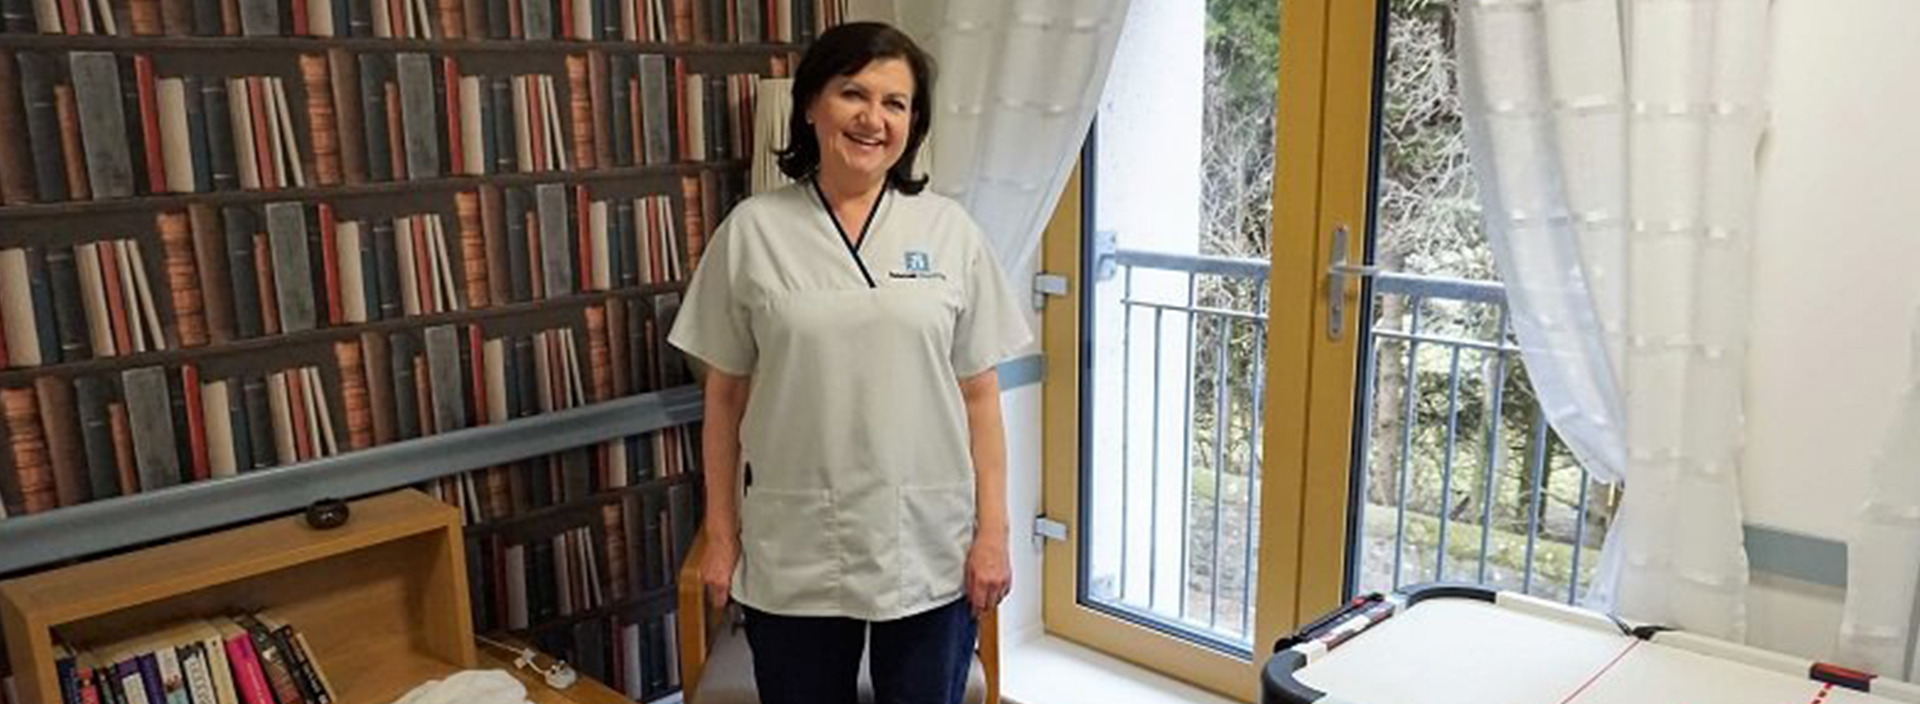 Nurse at Balhousie Care Group uses A&E experience to make difference to elderly residents